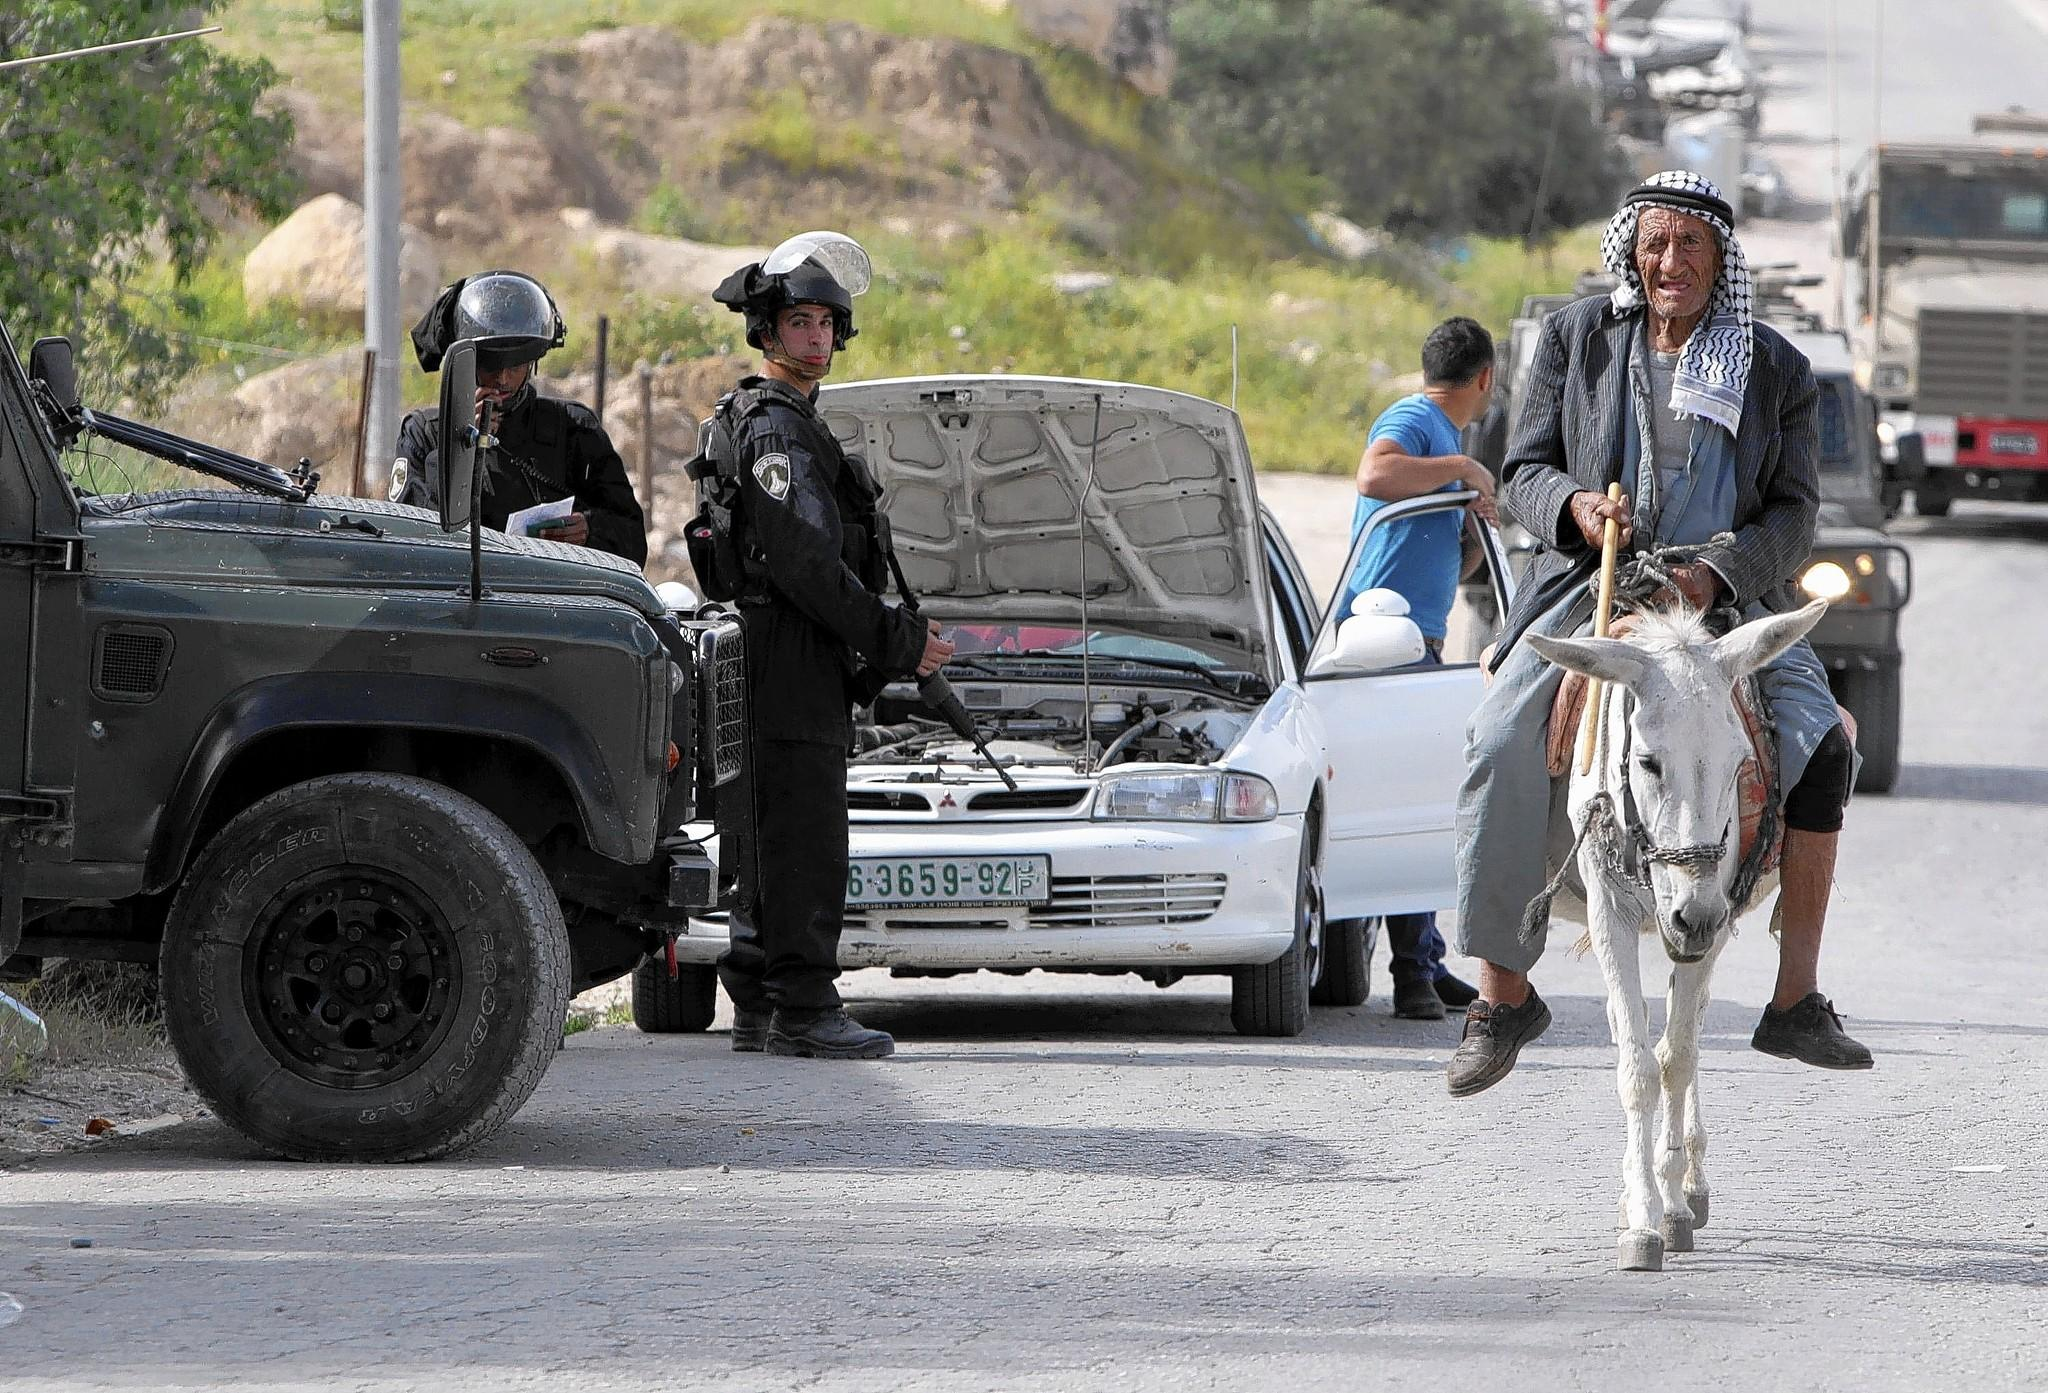 A Palestinian man rides a donkey past Israeli security officers conducting house raids in the West Bank village of Deir Sammit, in the wake of the fatal shooting of a police officer last week.